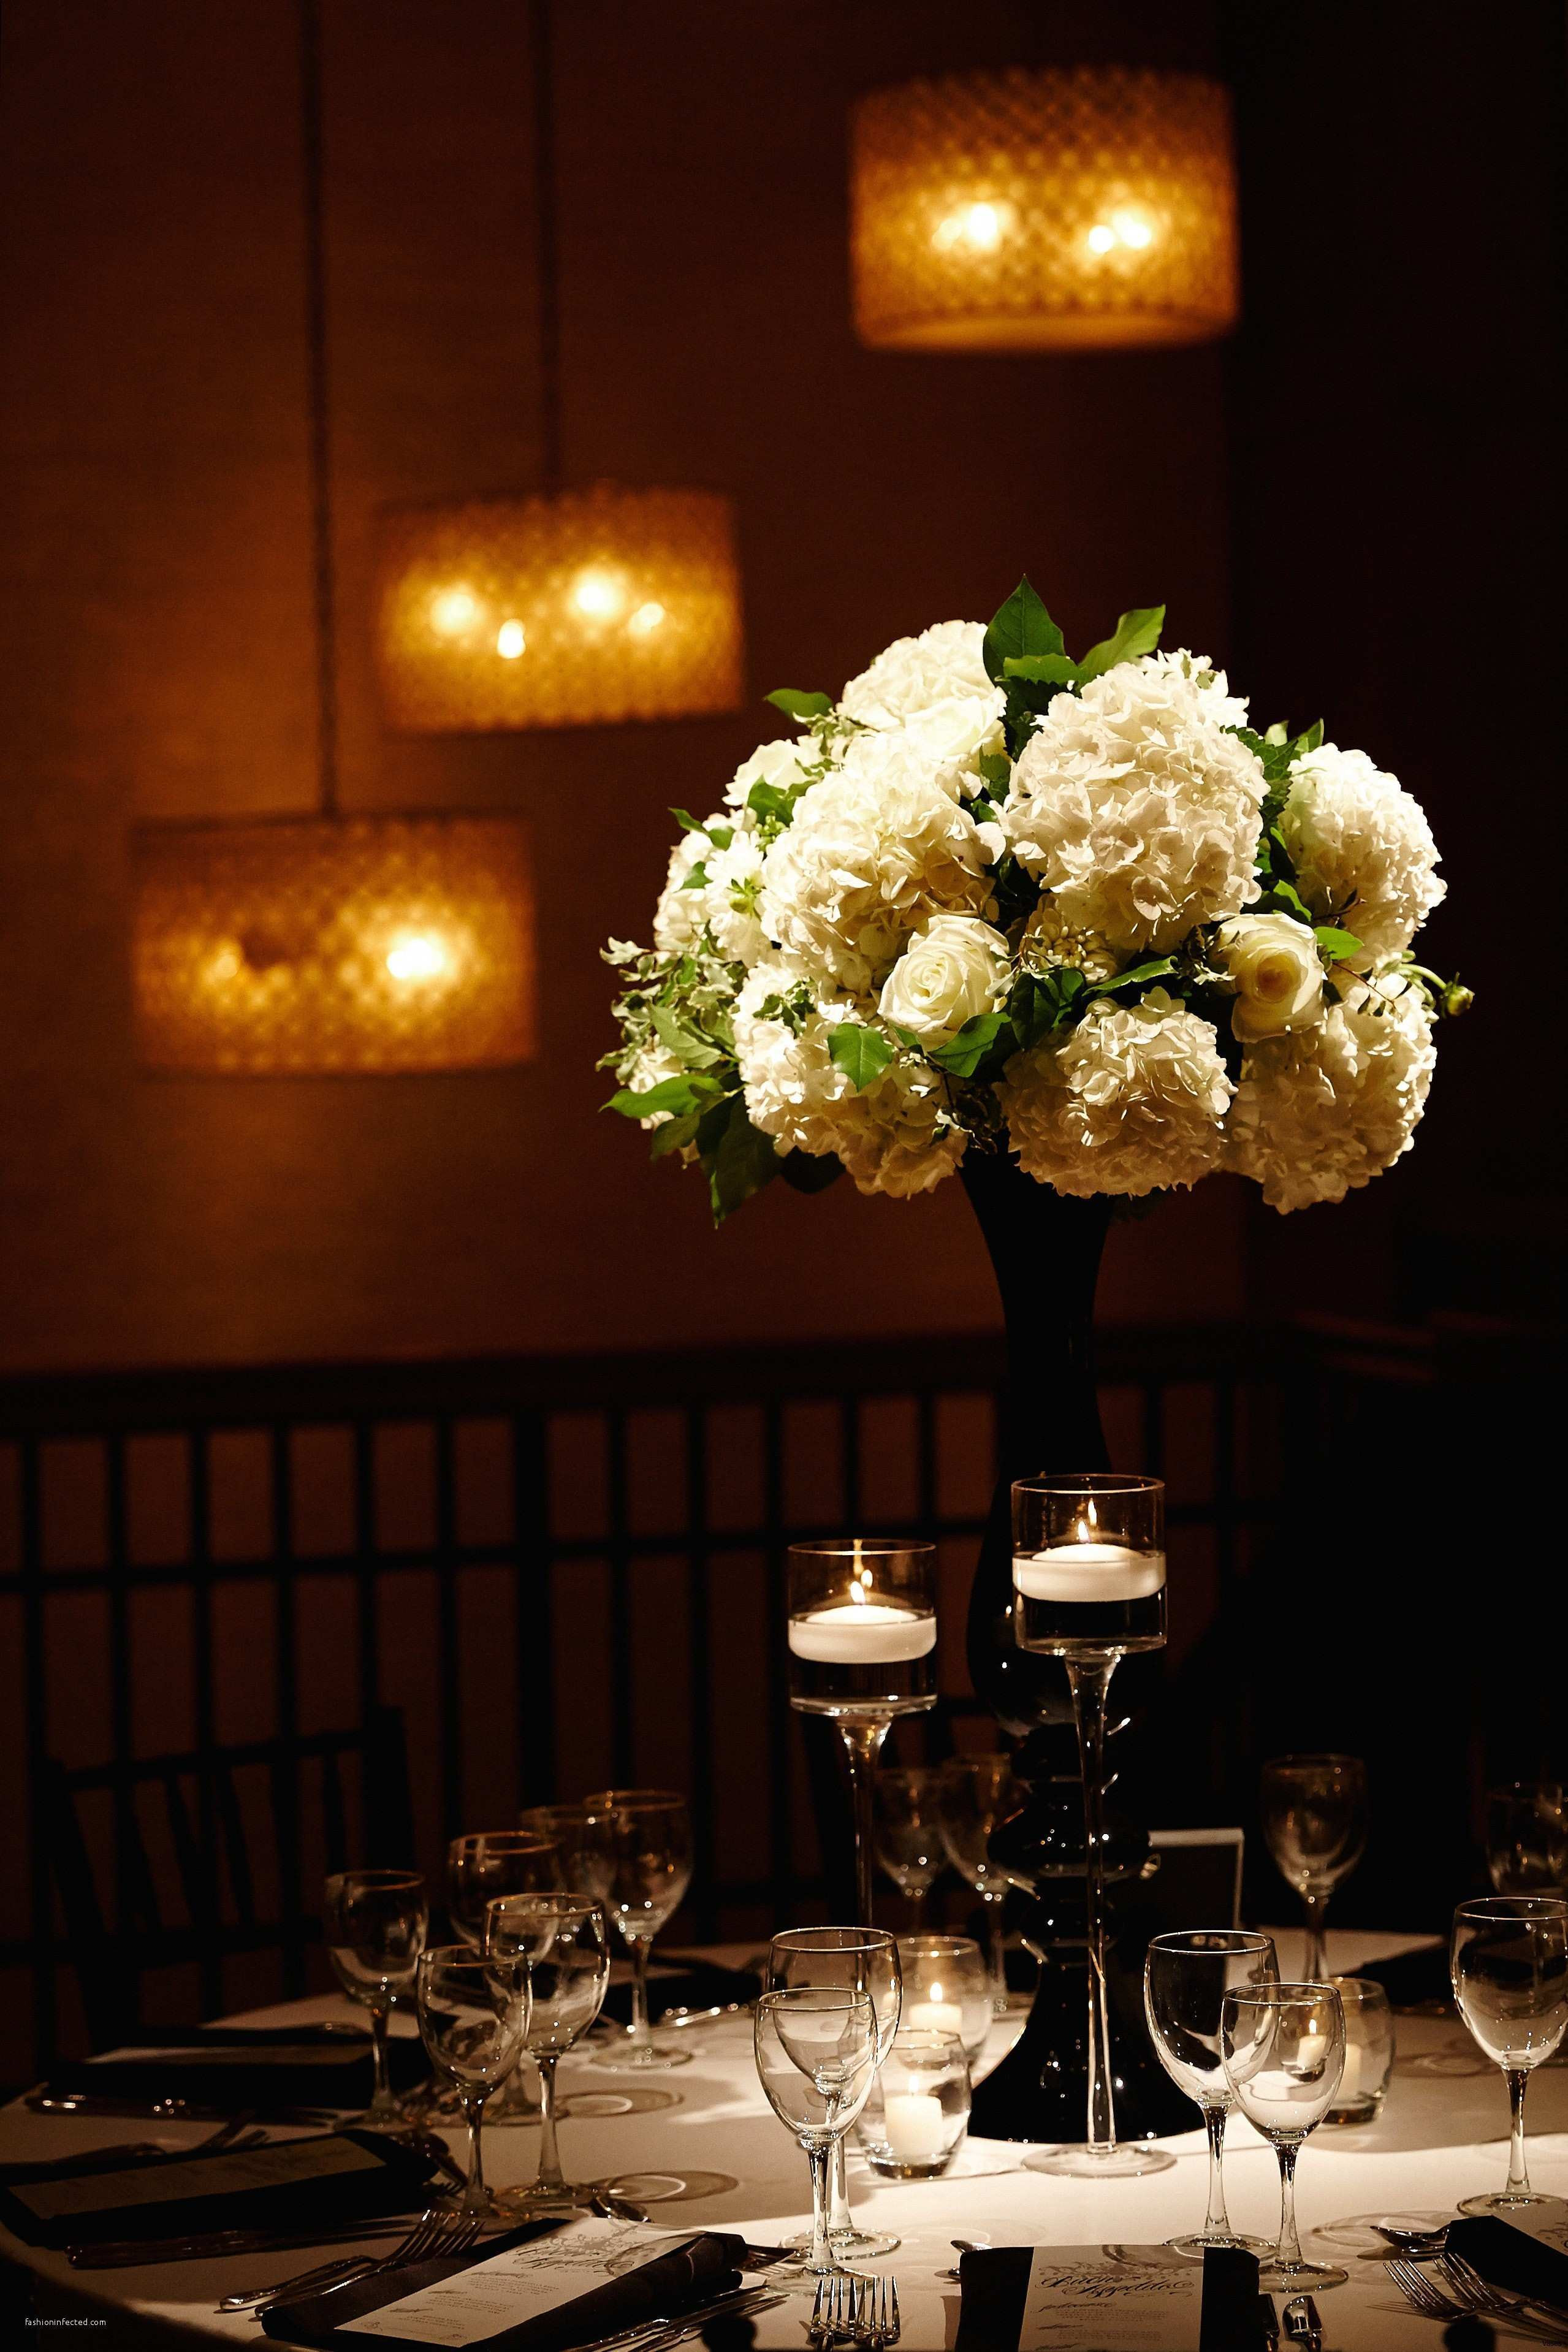 vase of roses images of neutral black and white wedding ideas for centerpieces and il regarding neutral black and white wedding ideas for centerpieces and il fullxfull h vases black vase white flowers zoomi 0d with design